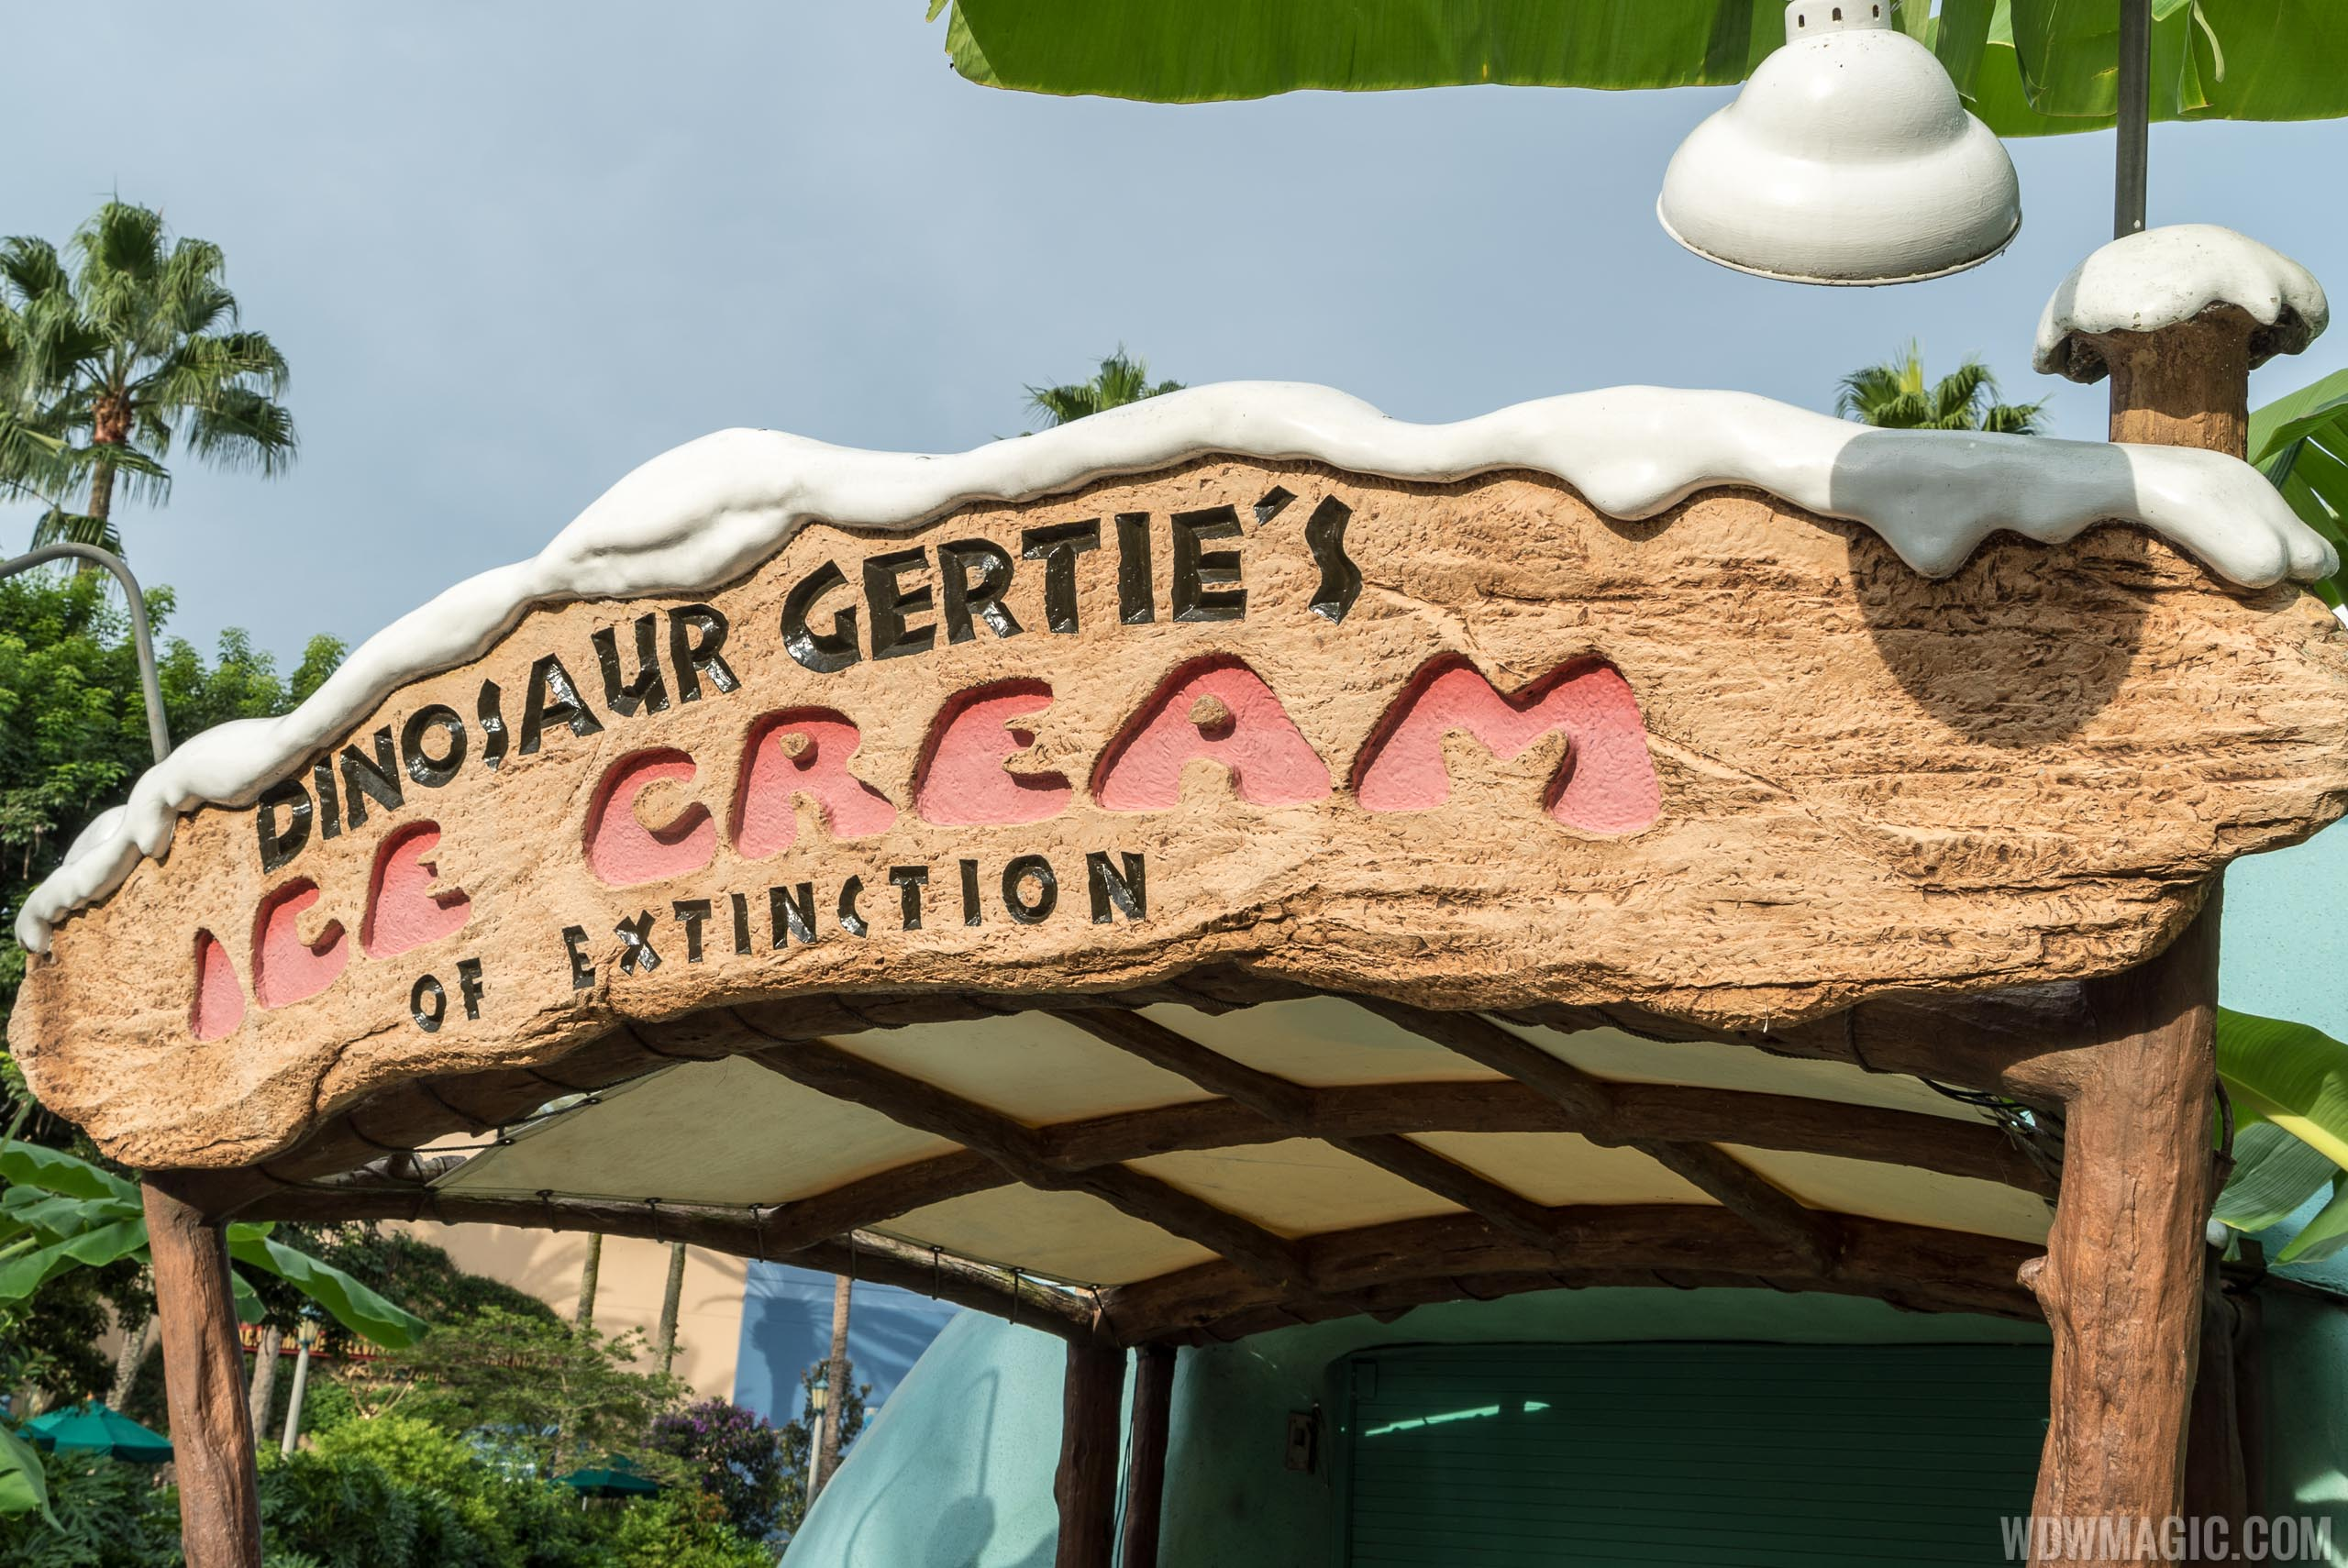 Dinosaur Gerties Ice Cream of Extinction overview